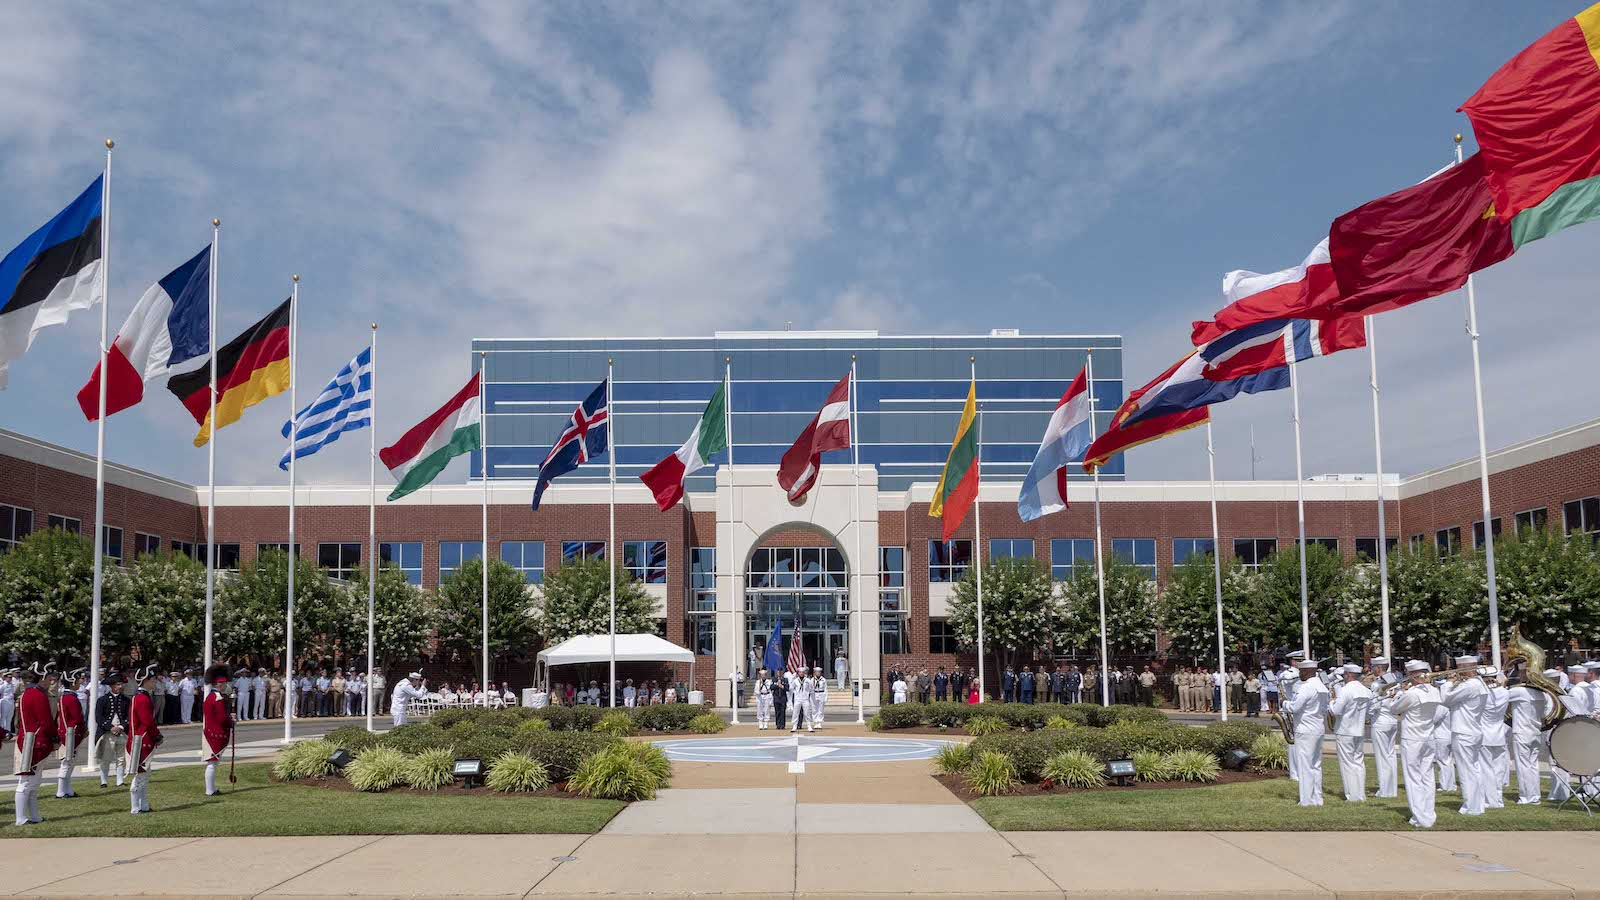 NATO Allied Command Transformation Celebrates America's Independence Day